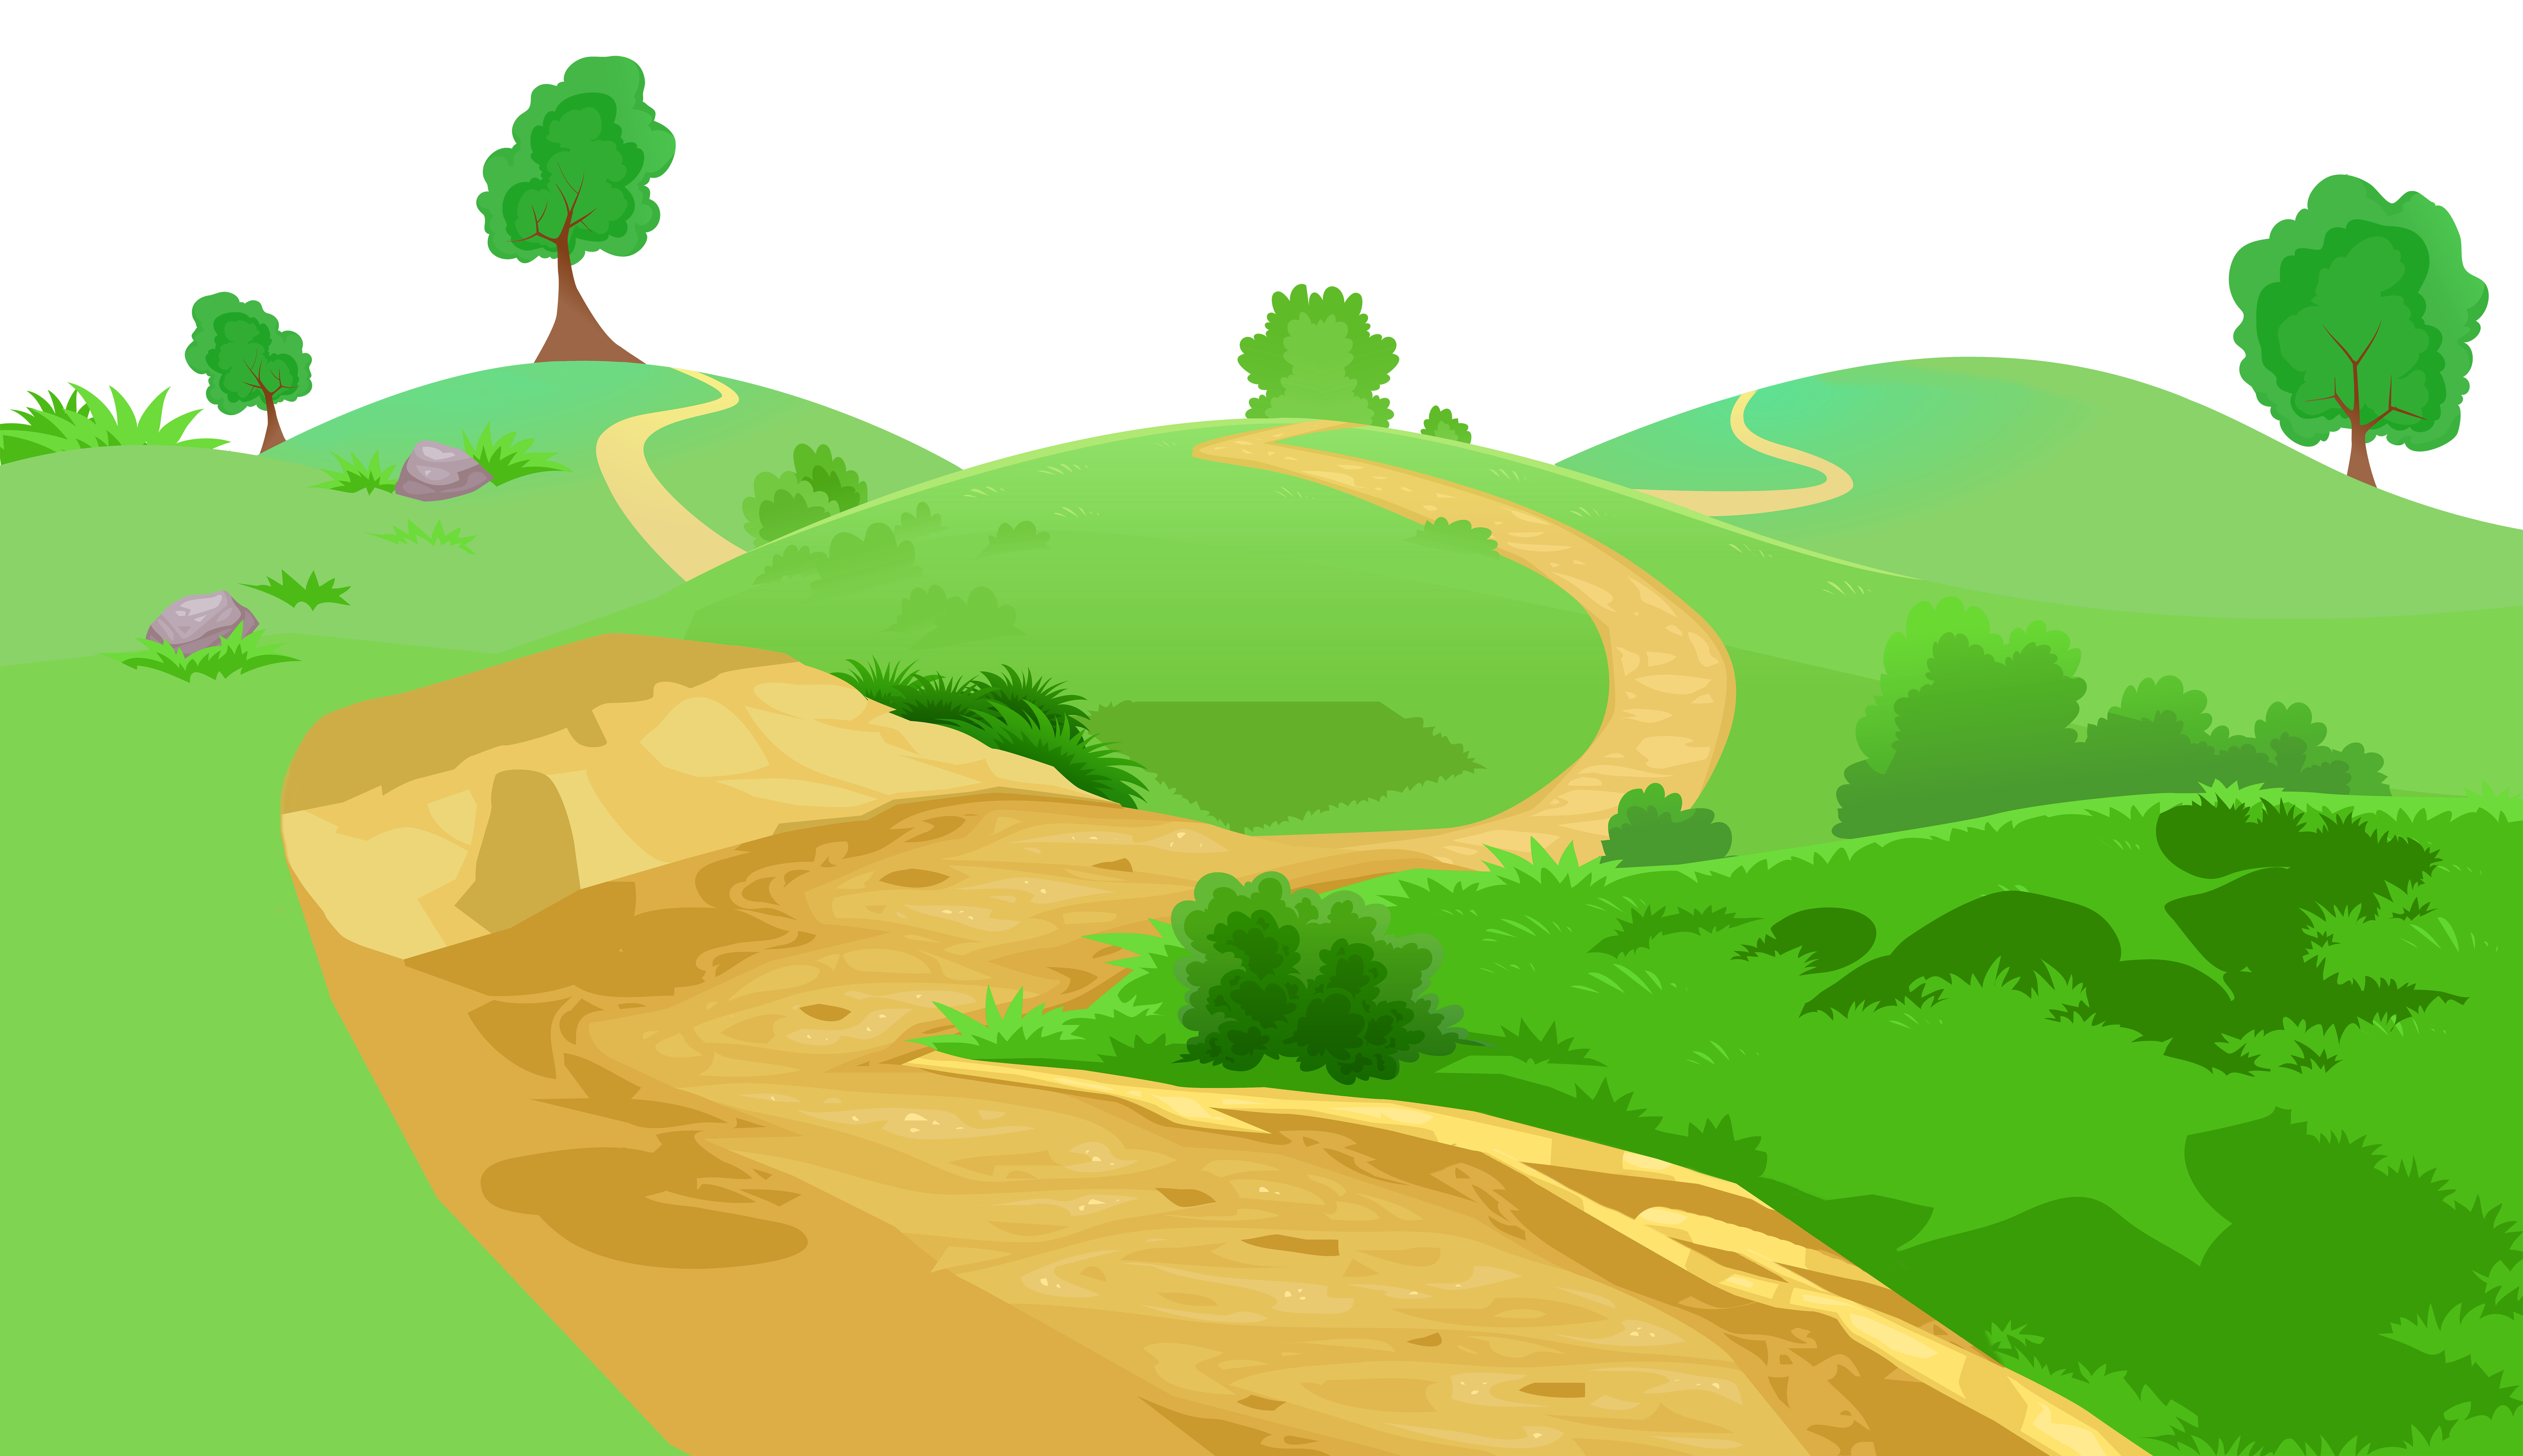 Pebble clipart pathway Download Pathway Pathway Download Pathway